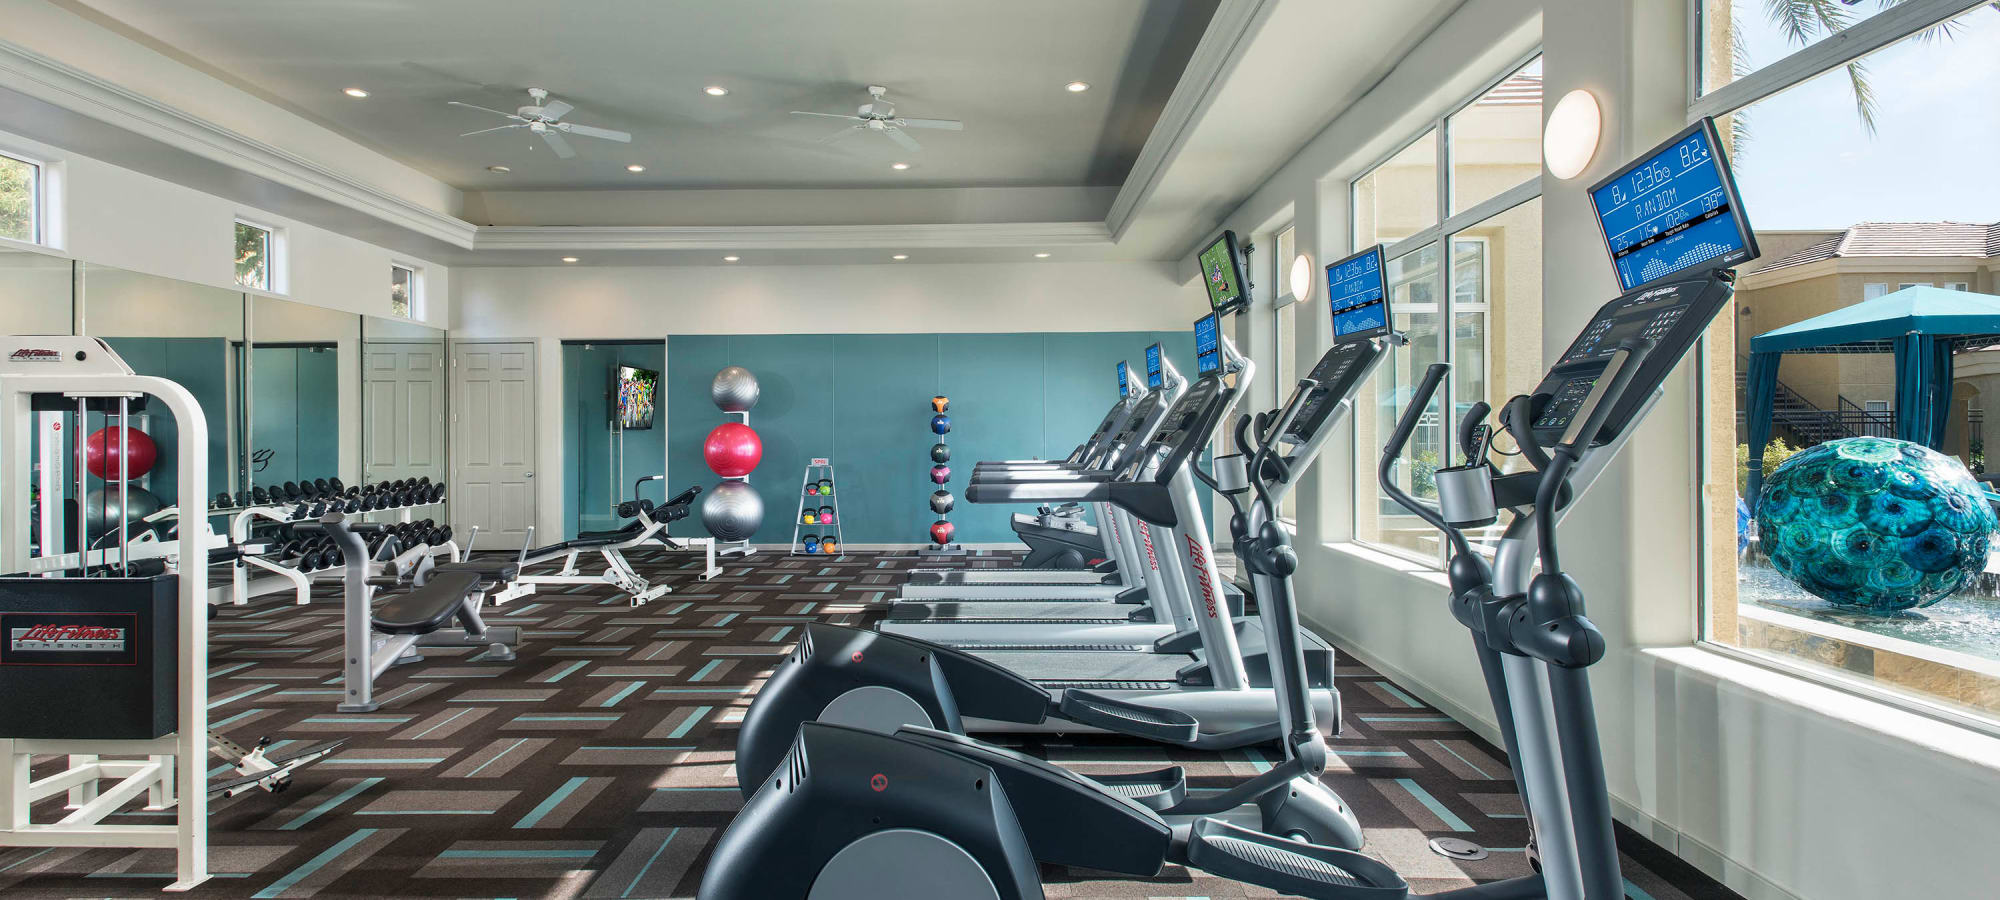 Well-equipped fitness center at Mira Santi in Chandler, Arizona